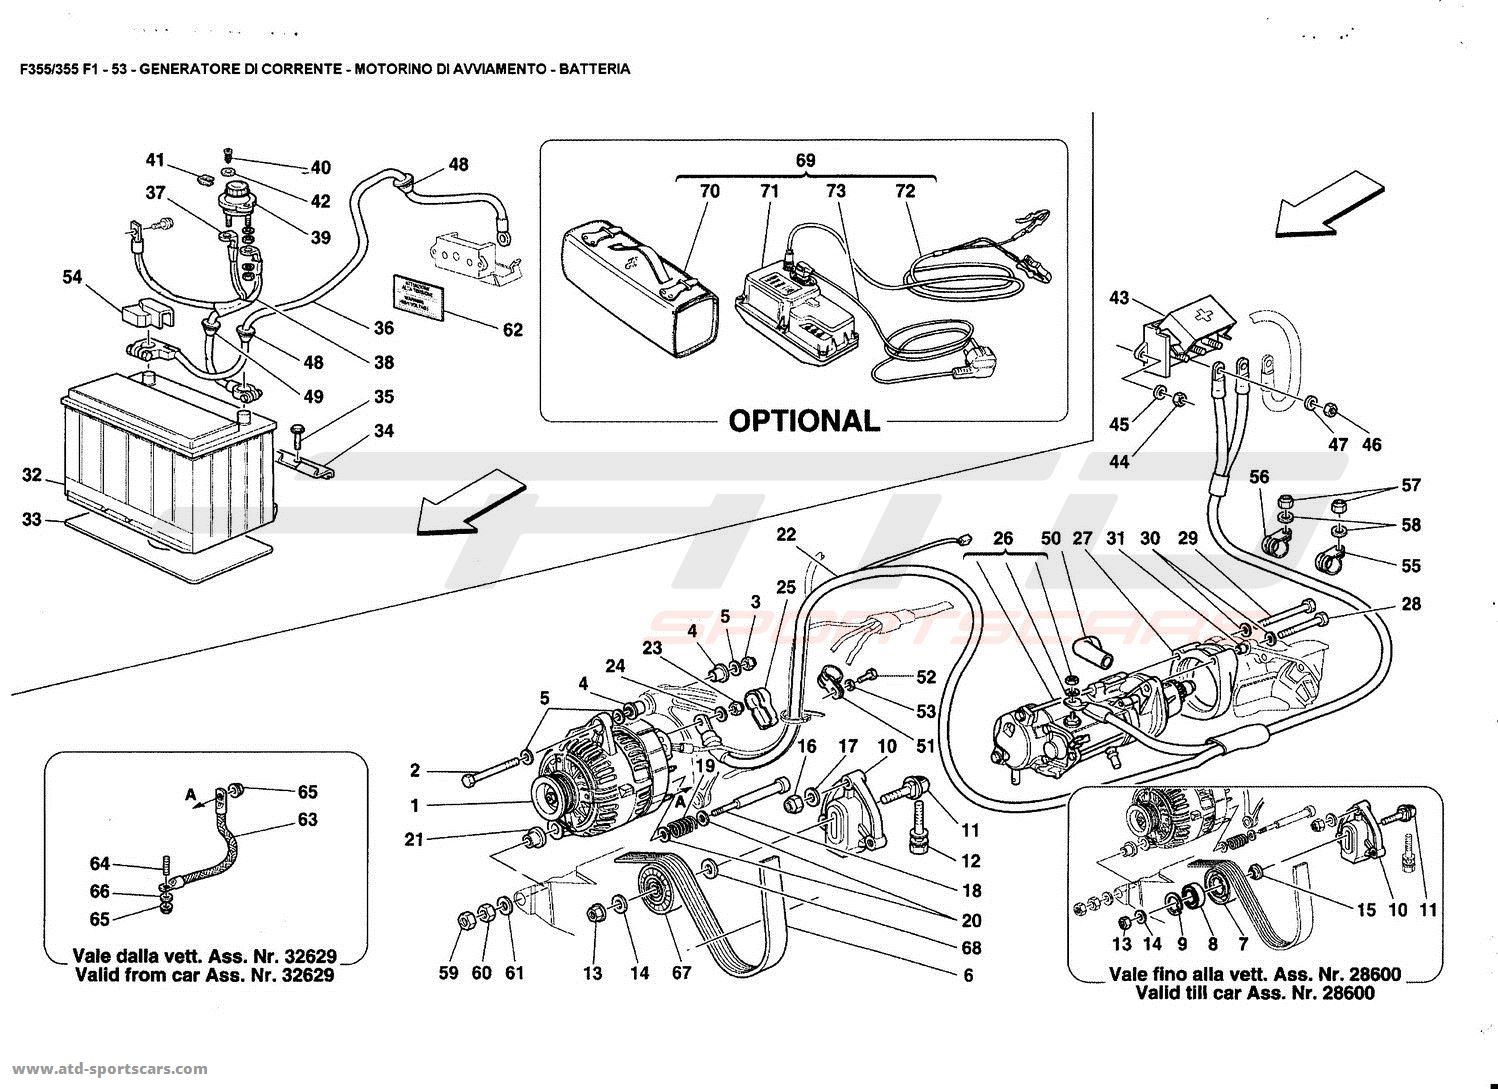 Peachy Ferrari F355 5 2 F1 Electrical Parts At Atd Sportscars Atd Wiring Cloud Pimpapsuggs Outletorg